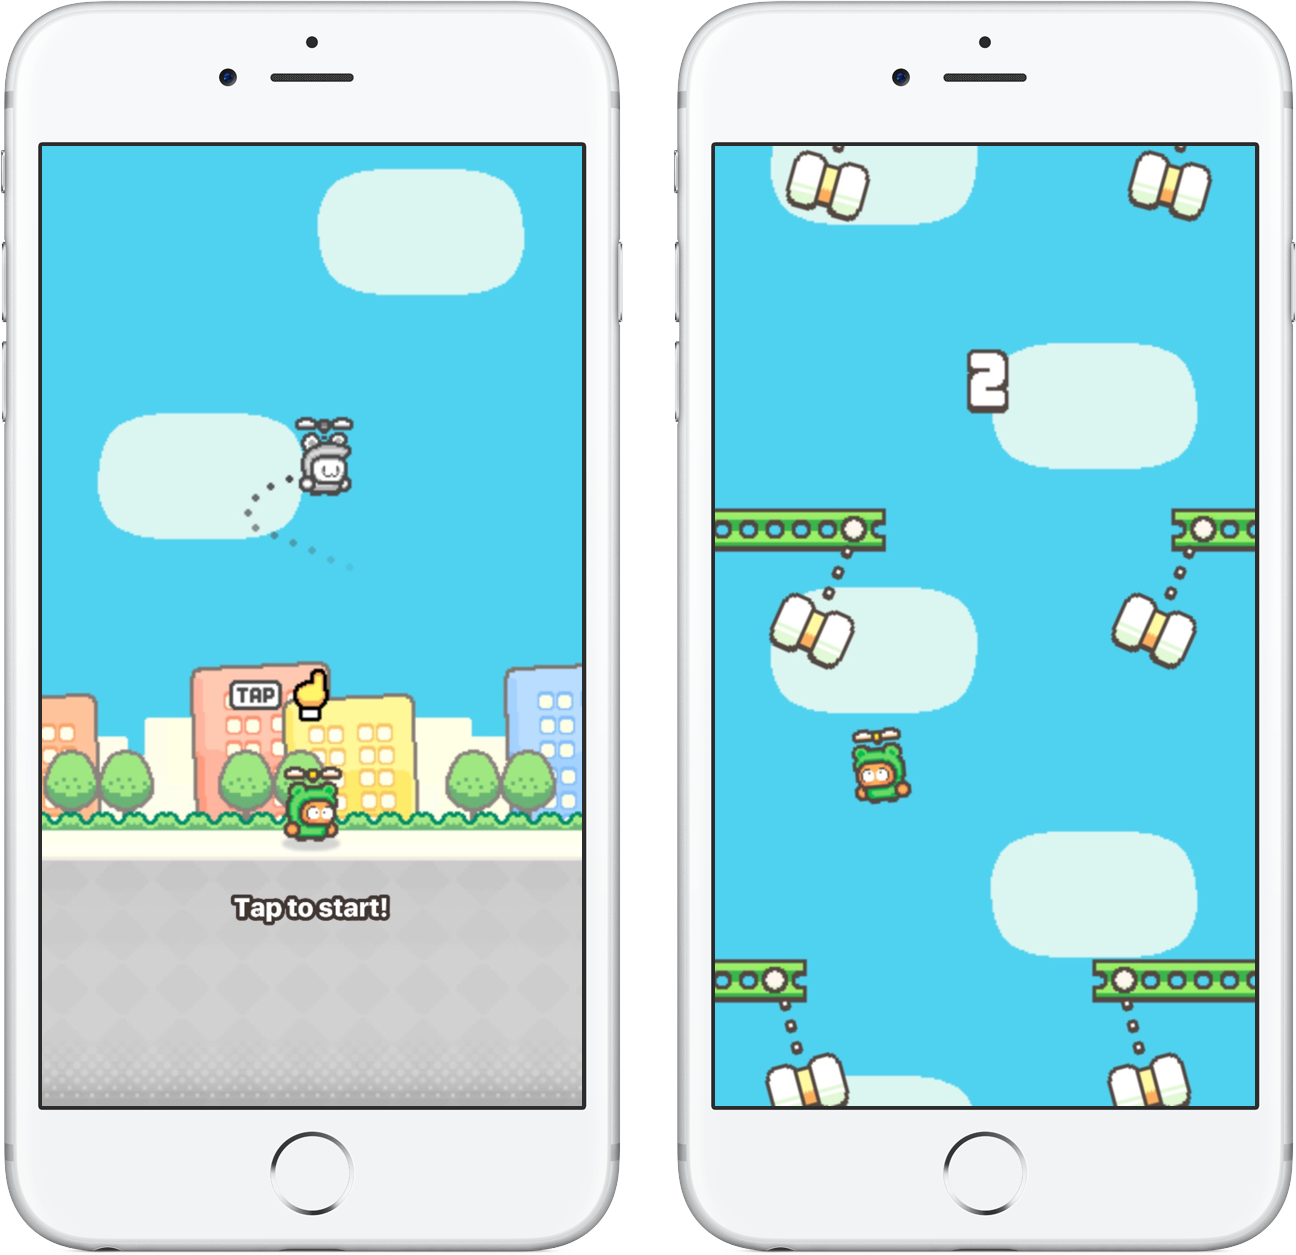 Swing Copters 2 tap to start